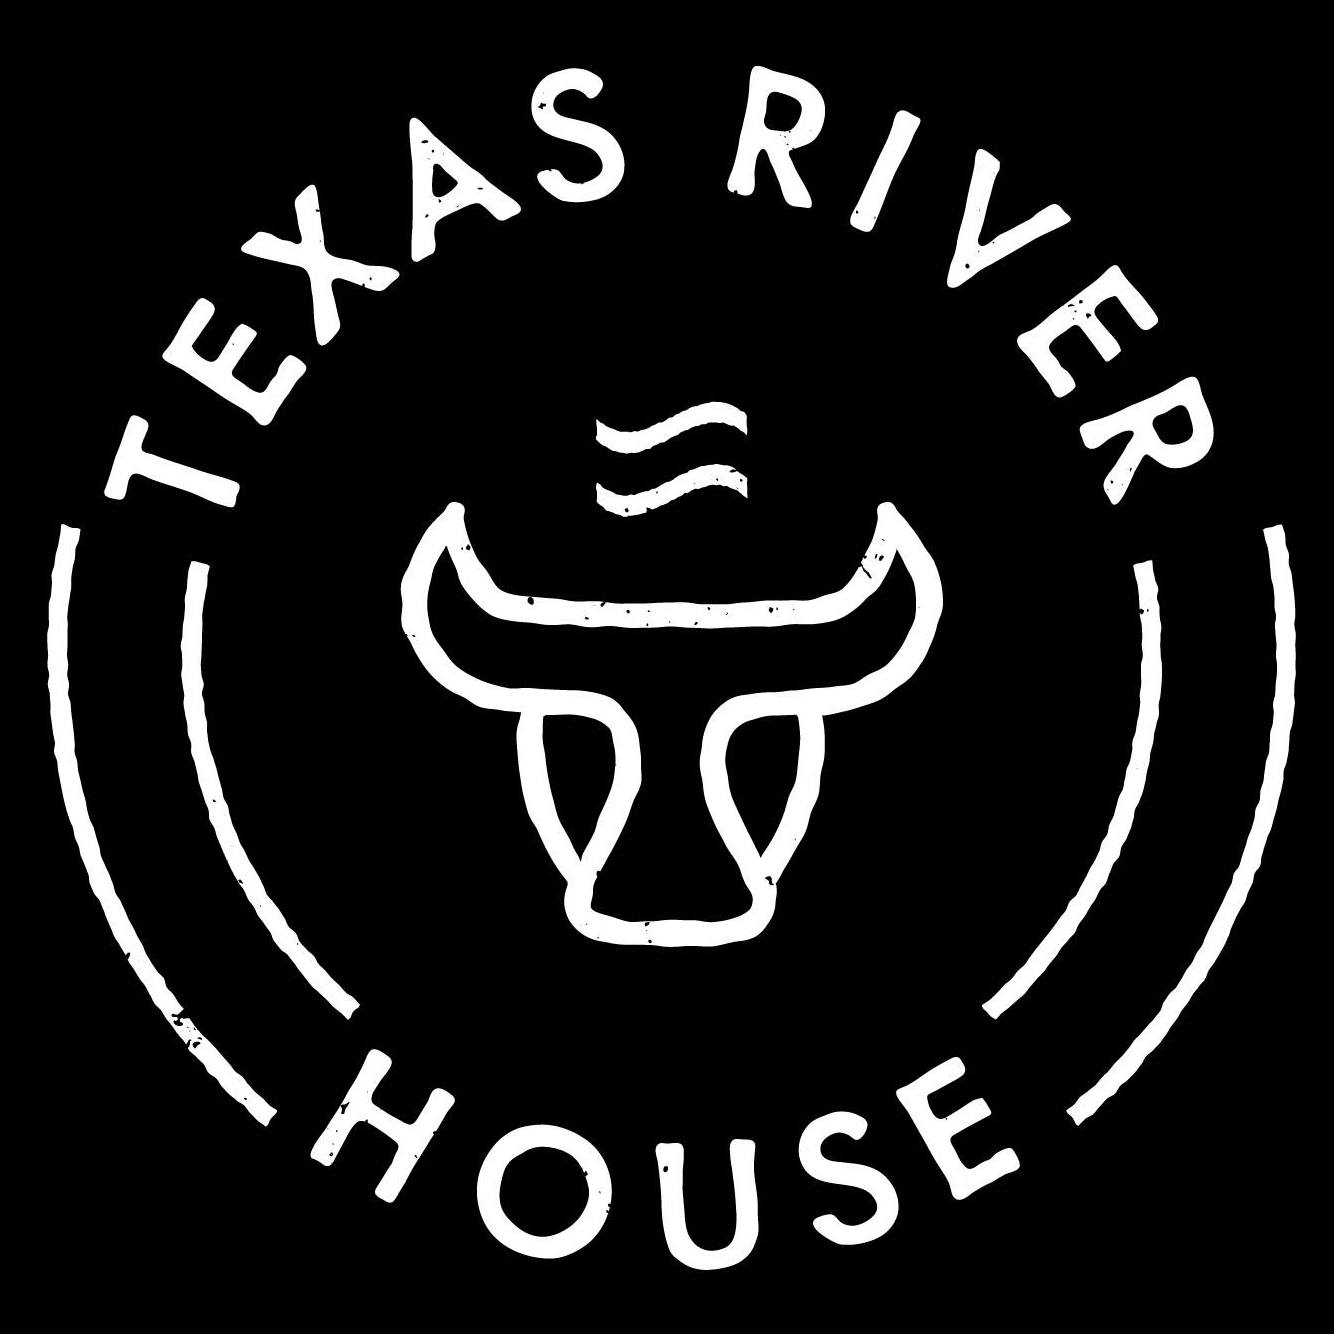 Texas River House